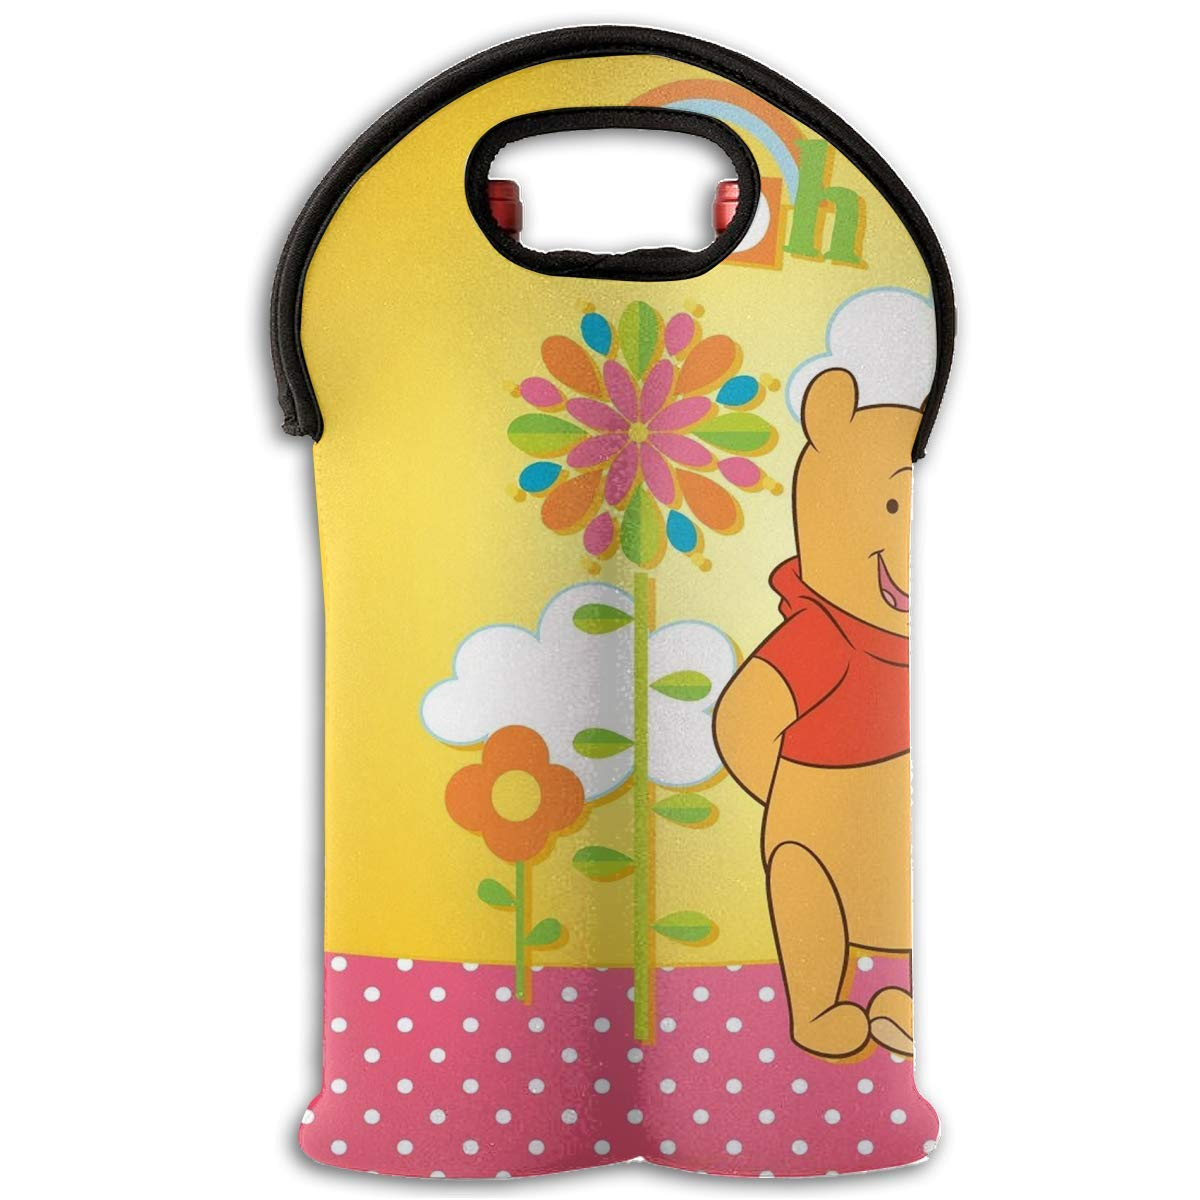 2-Bottle Little Mickey and Minnie Durable Neoprene Wine//Water Bottle Tote Wine Carrier Tote Bag